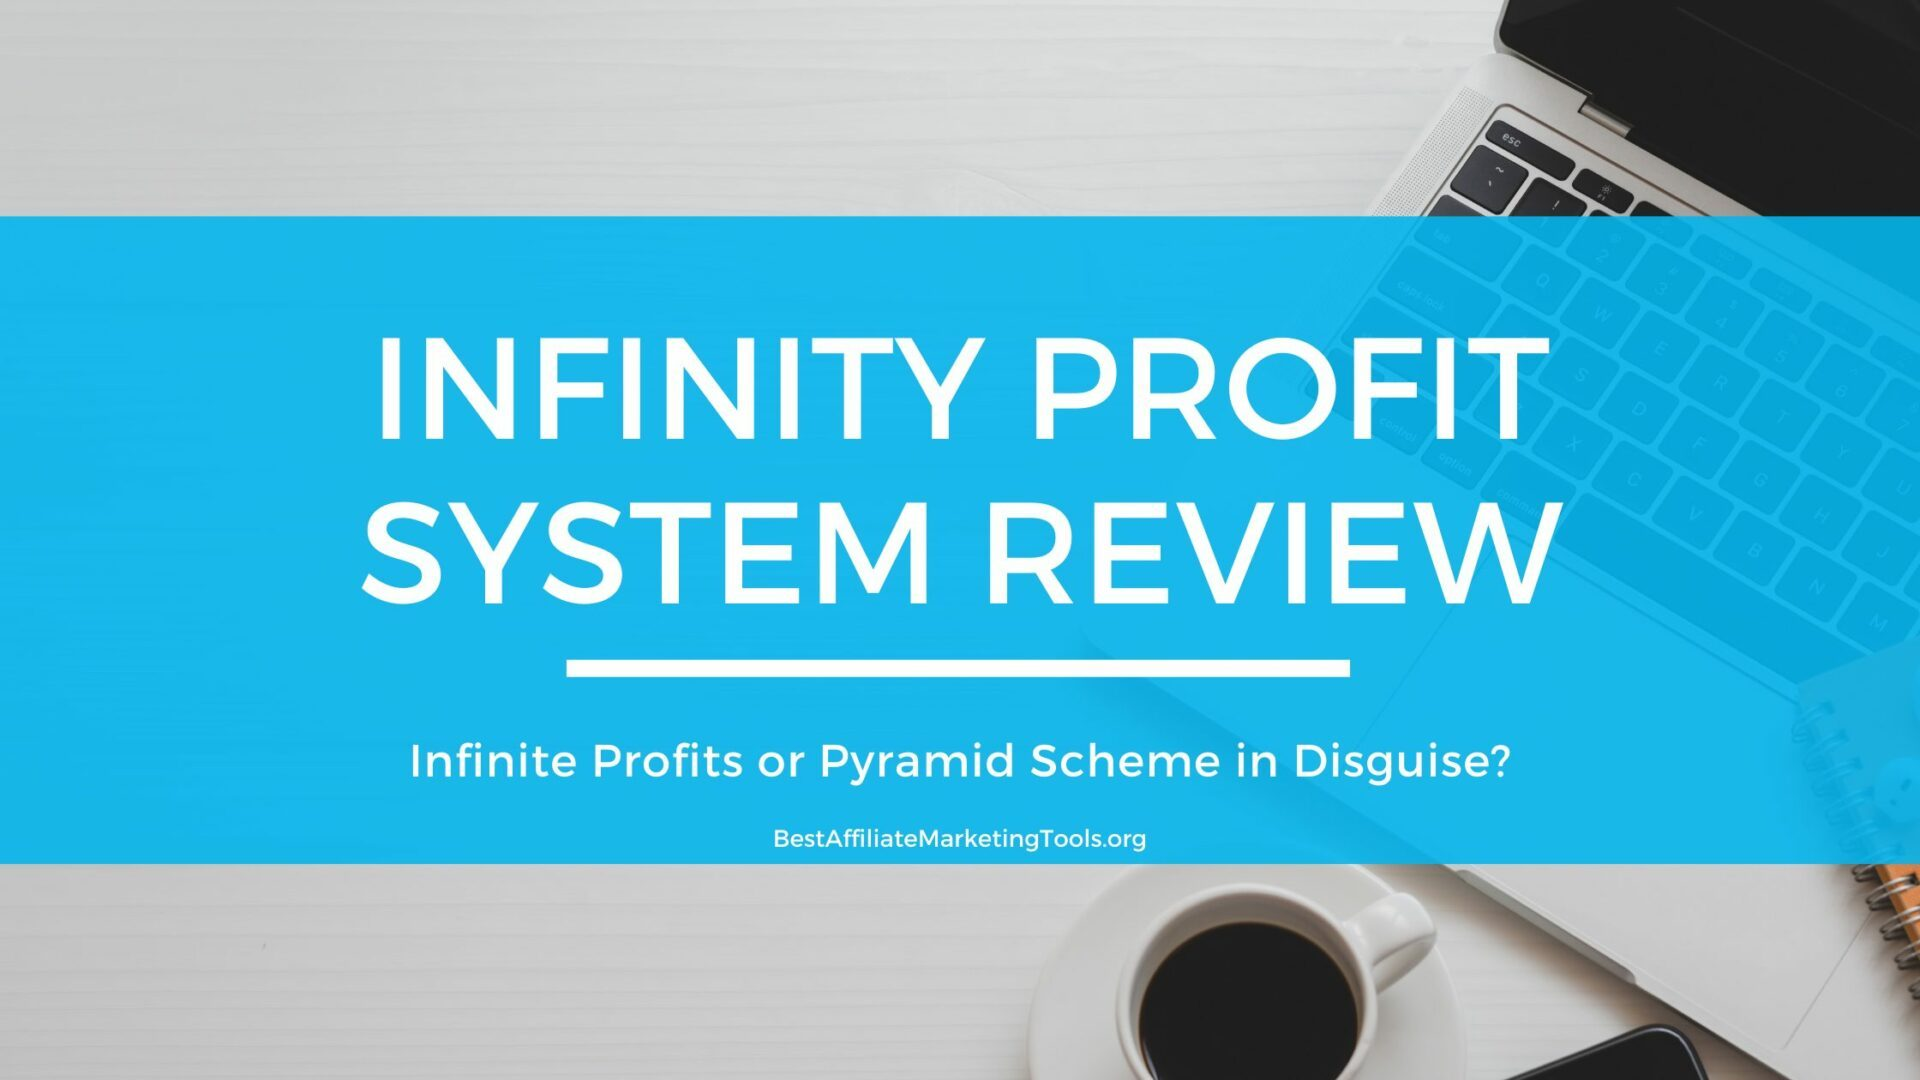 Infinity Profit System Review